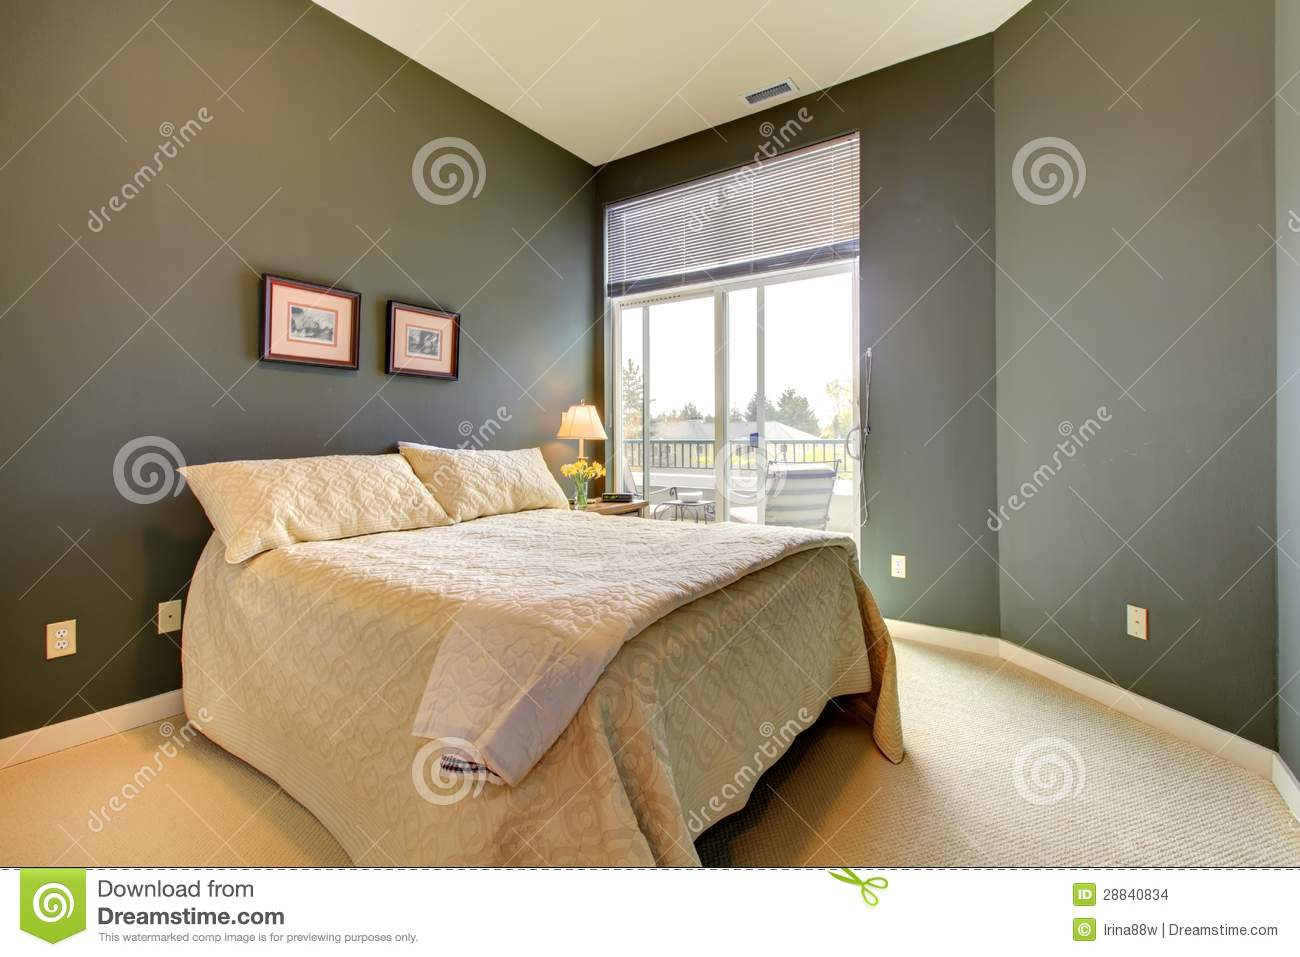 Bedroom Wiht Grey Green Walls And White Bedding Stock